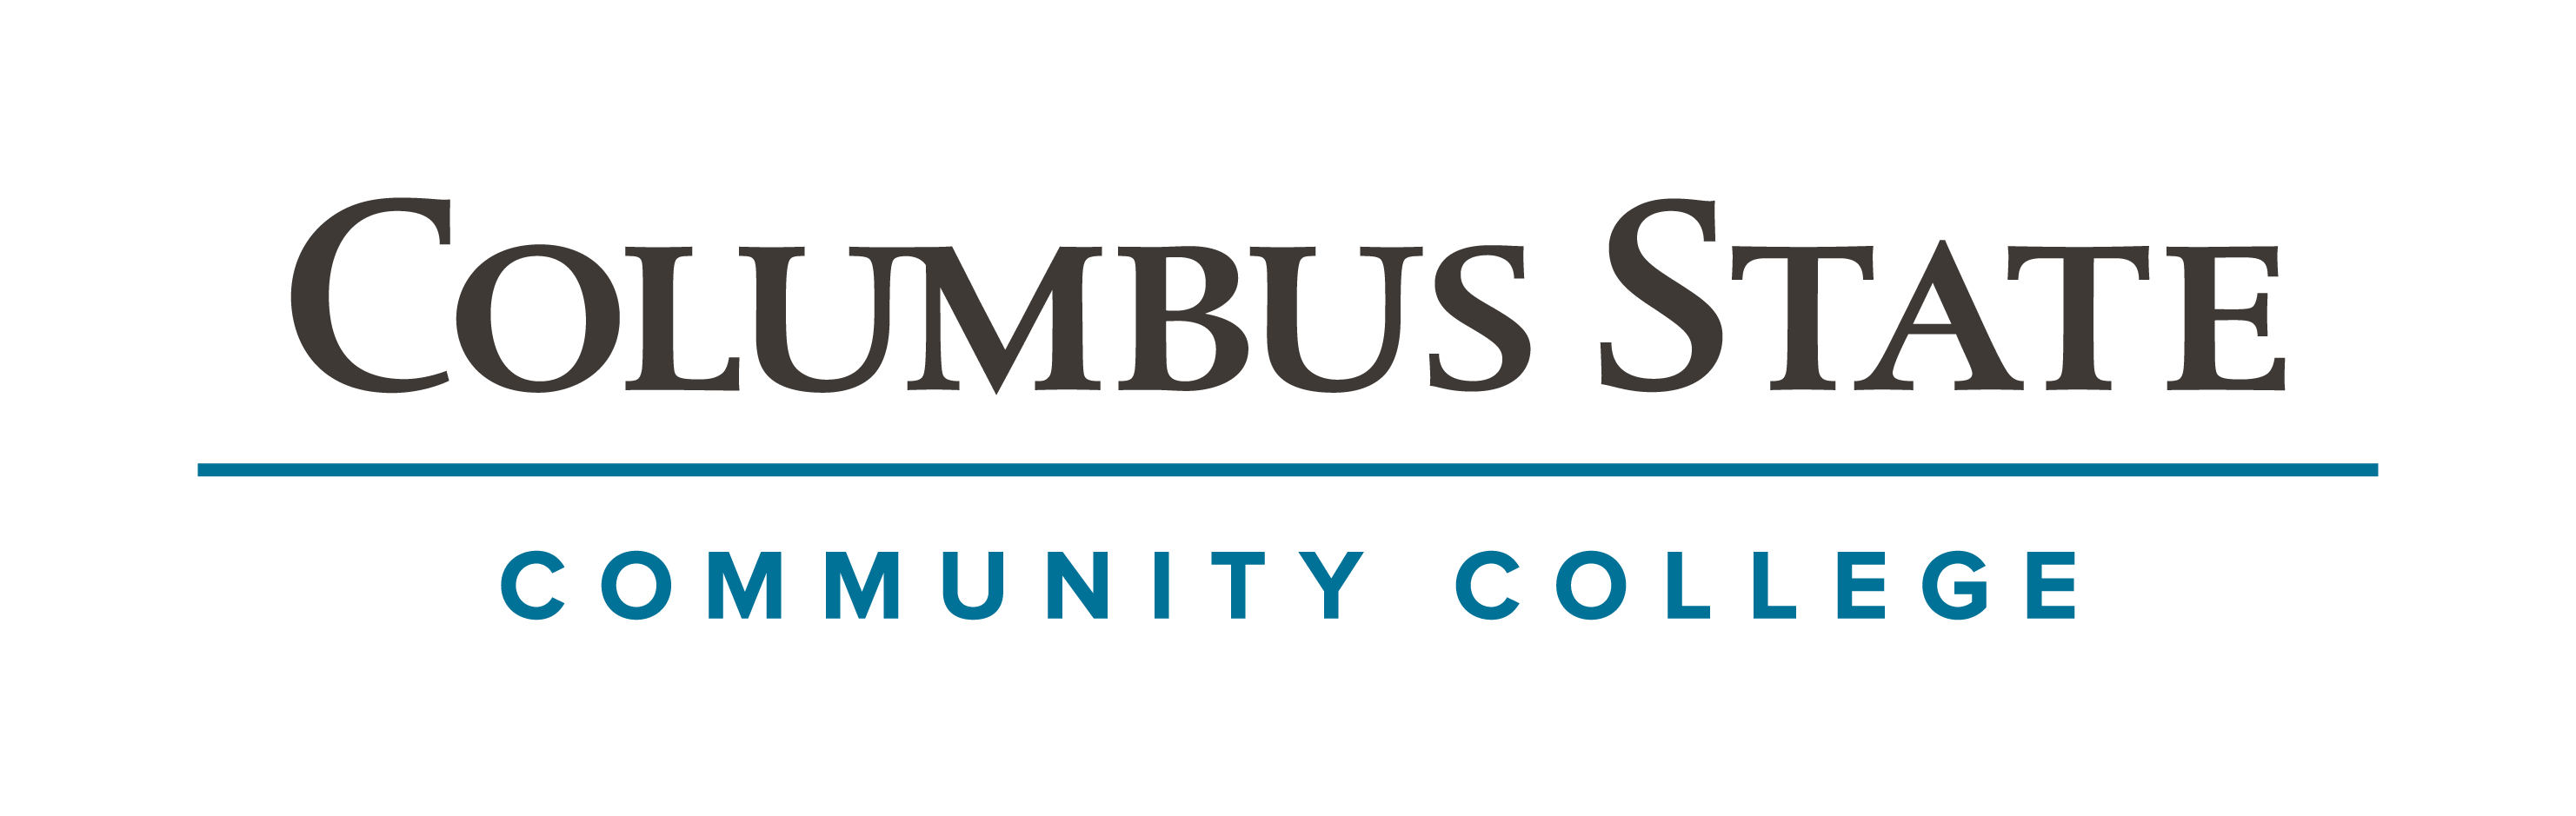 Columbus State Community College releases Request for Qualifications for On-Call Project Management Services